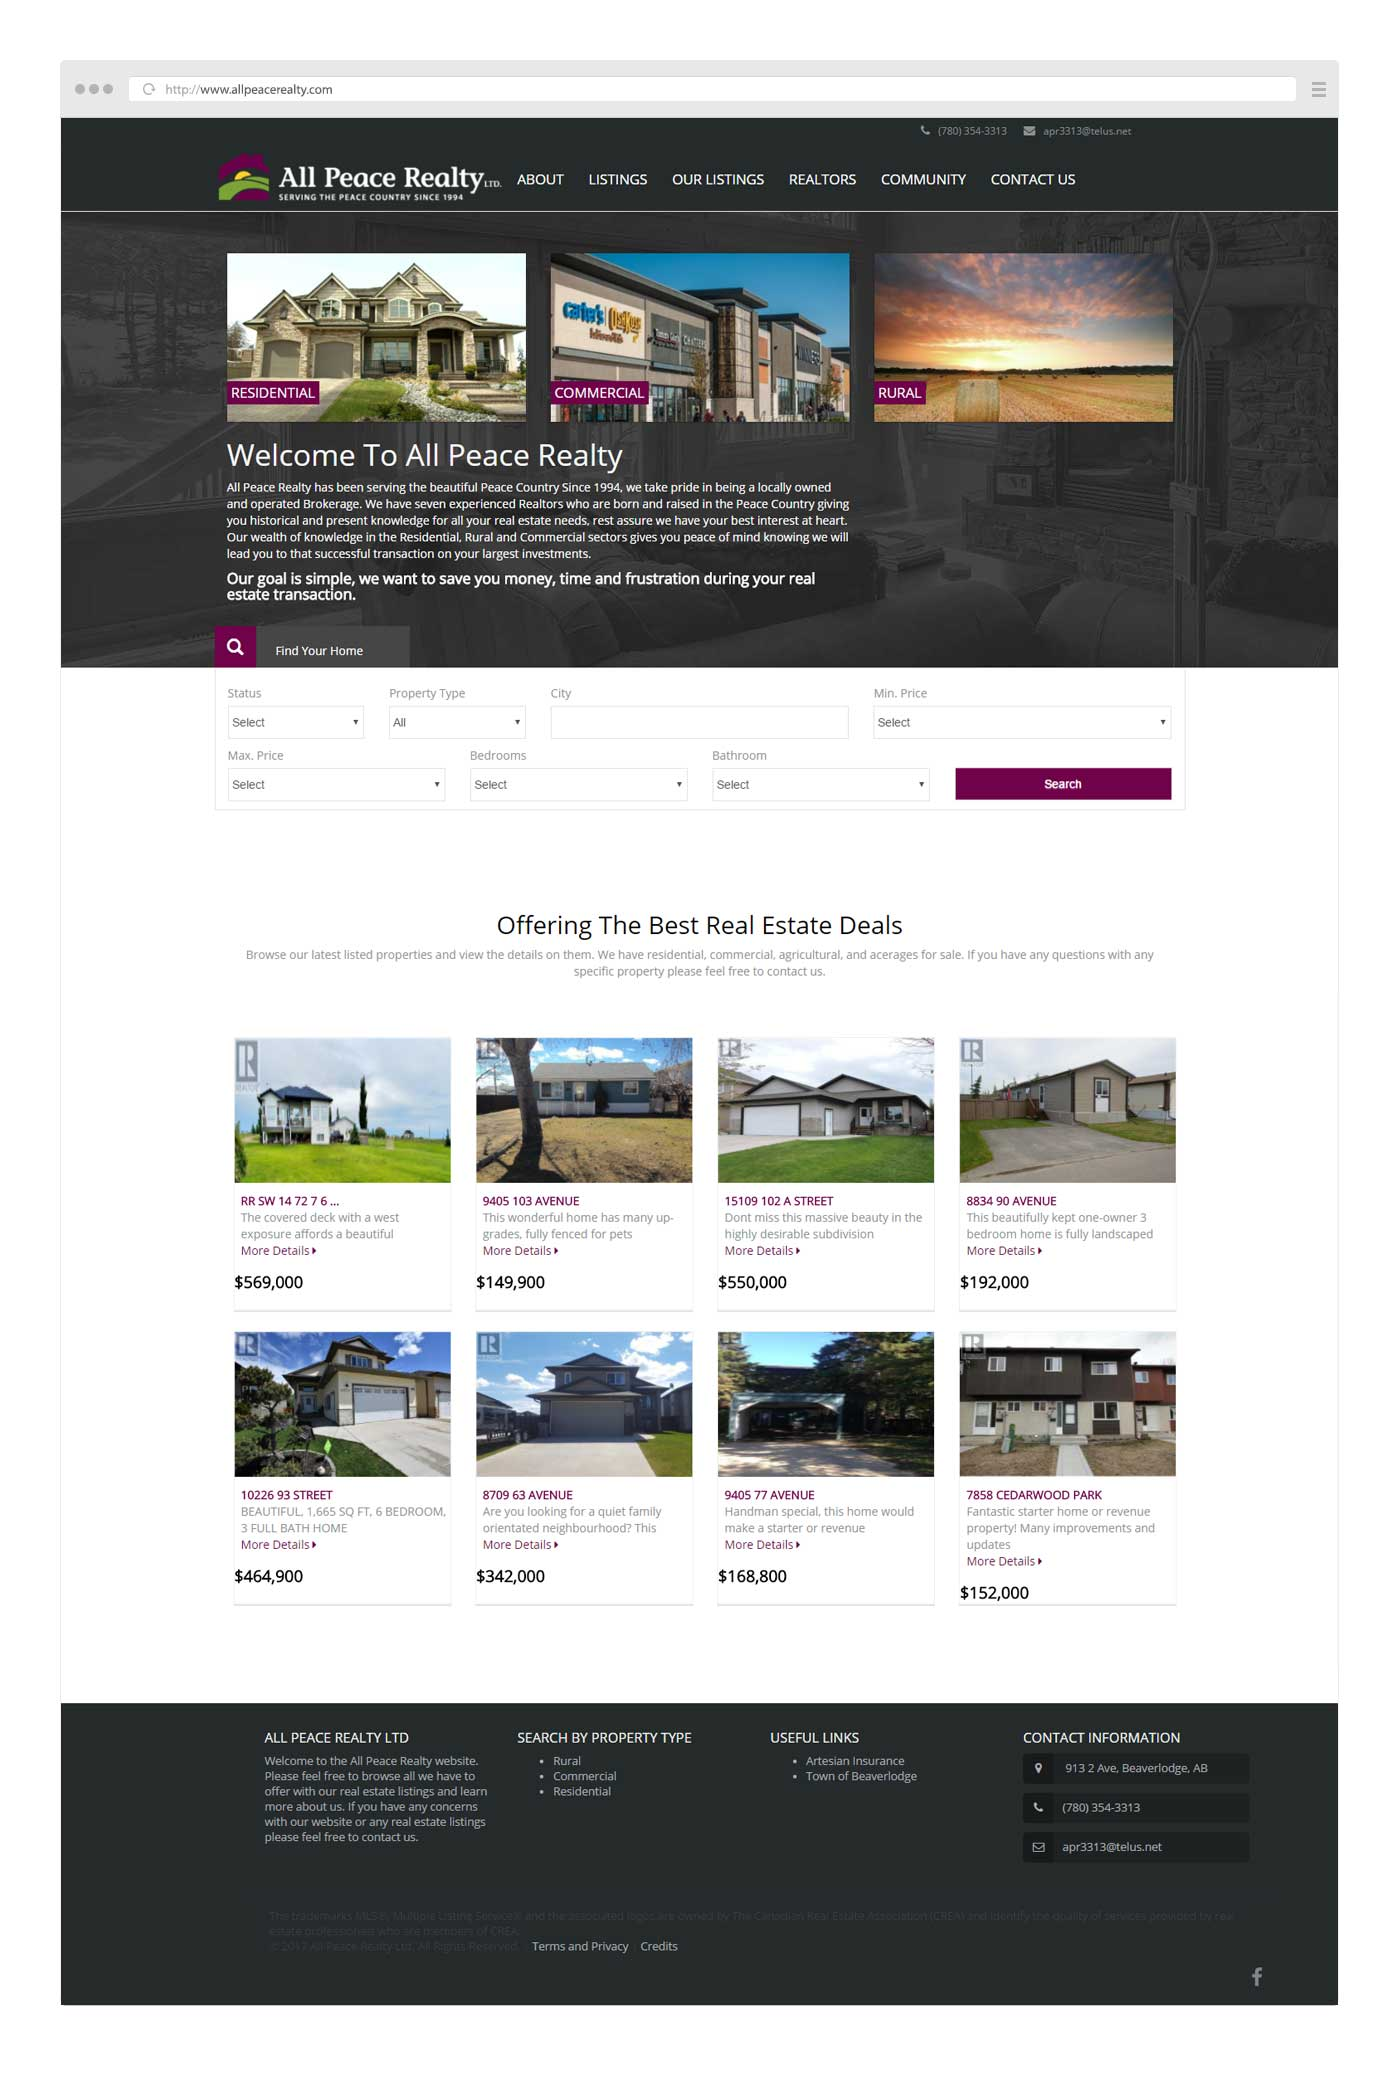 Initial Website Design for All Peace Realty